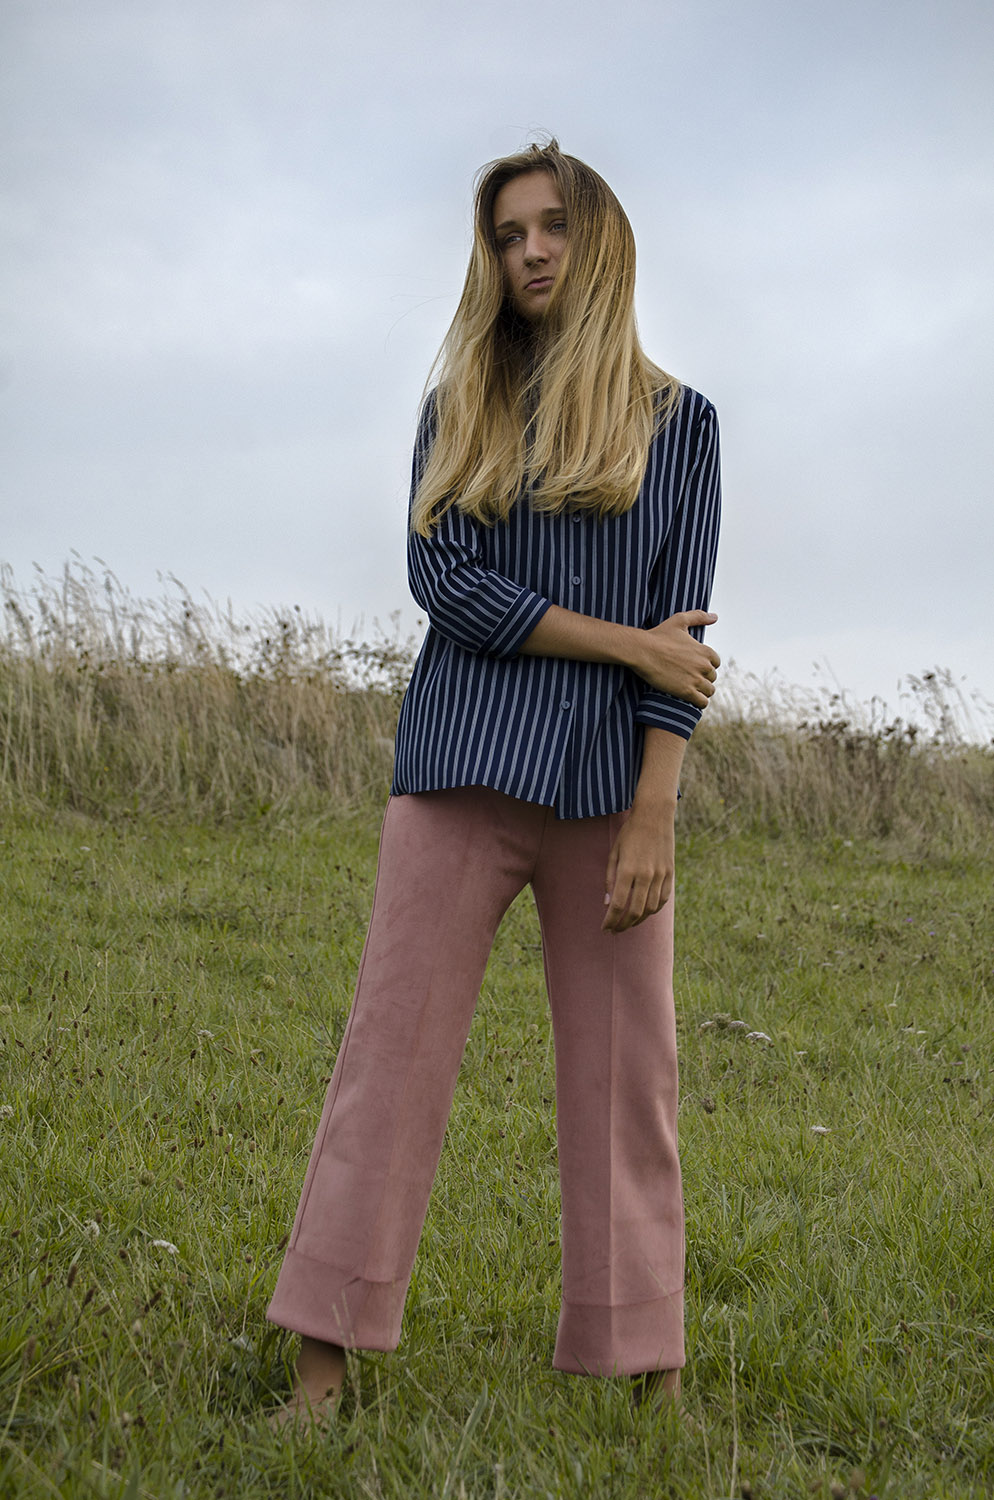 Shirt: Asos, Trousers: Max&Co